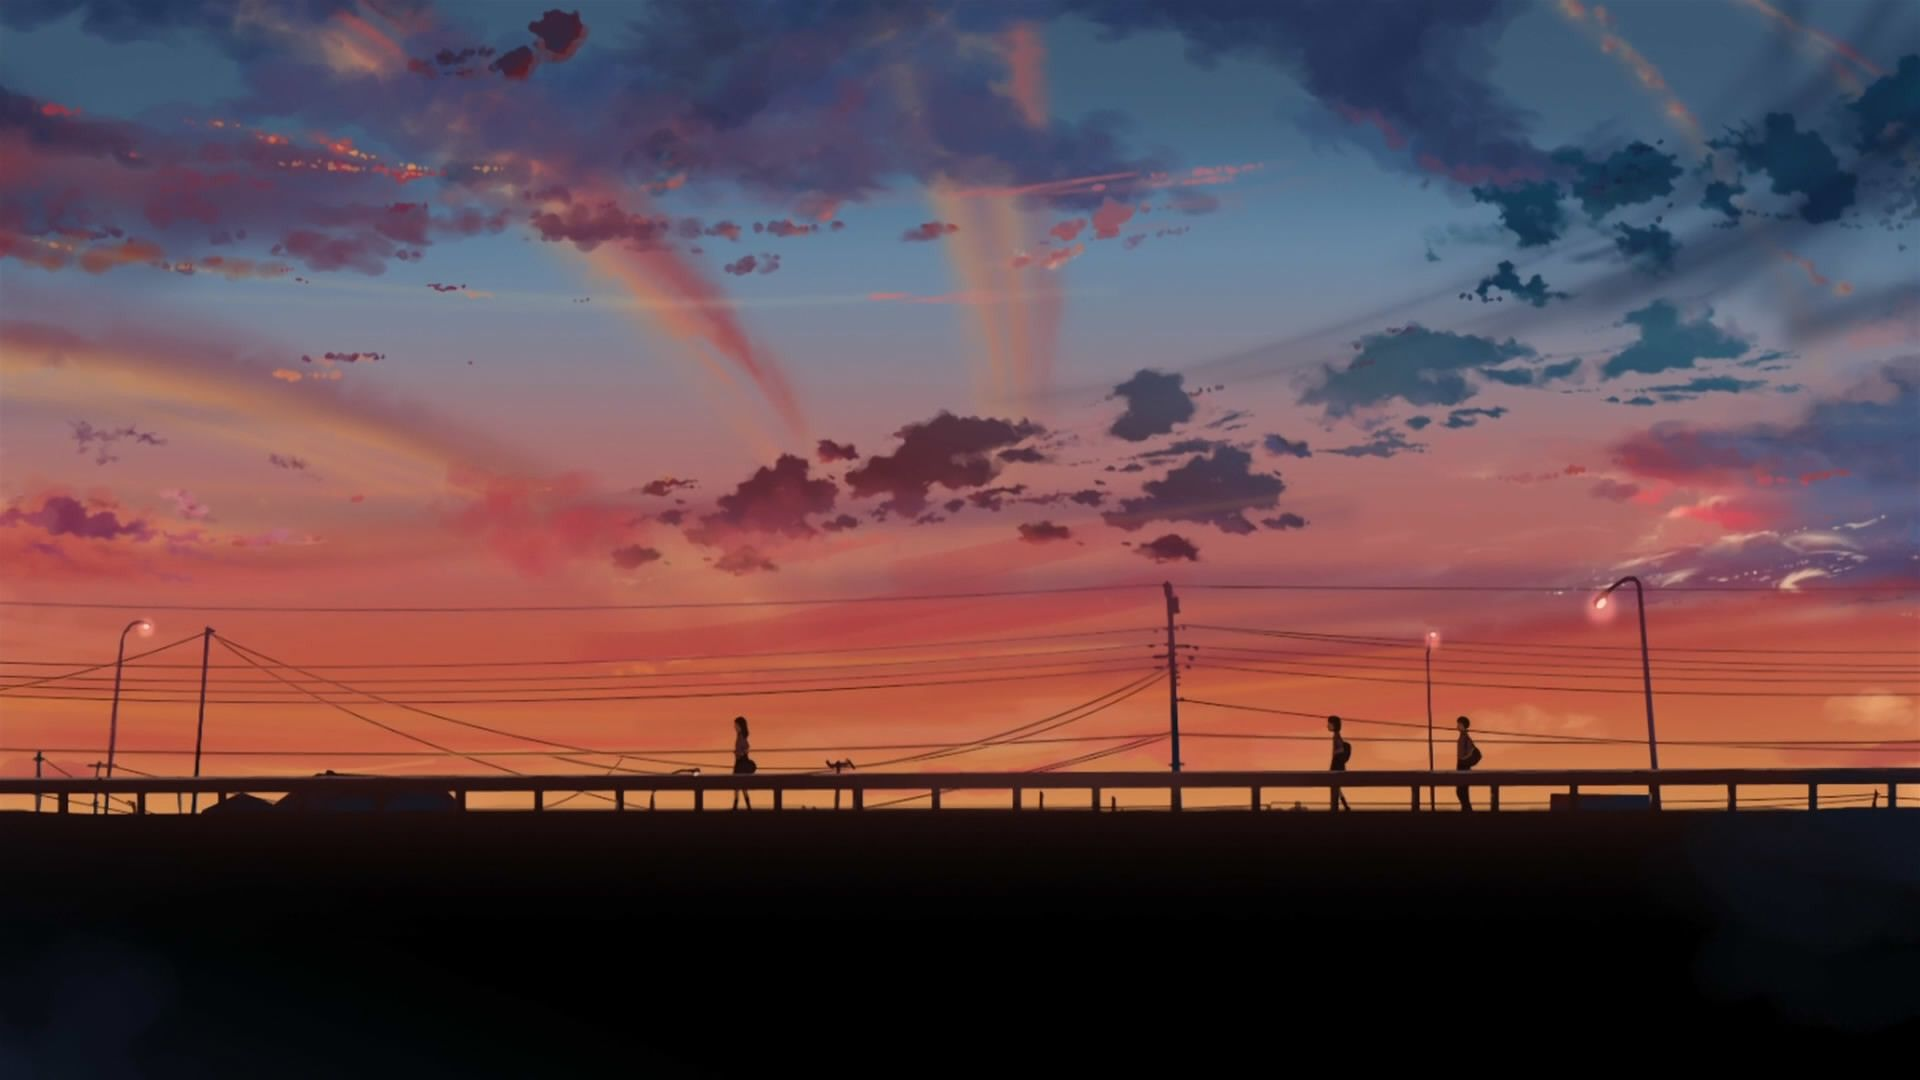 1920x1080 5 Centimeters Per Second Clouds Makoto Shinkai